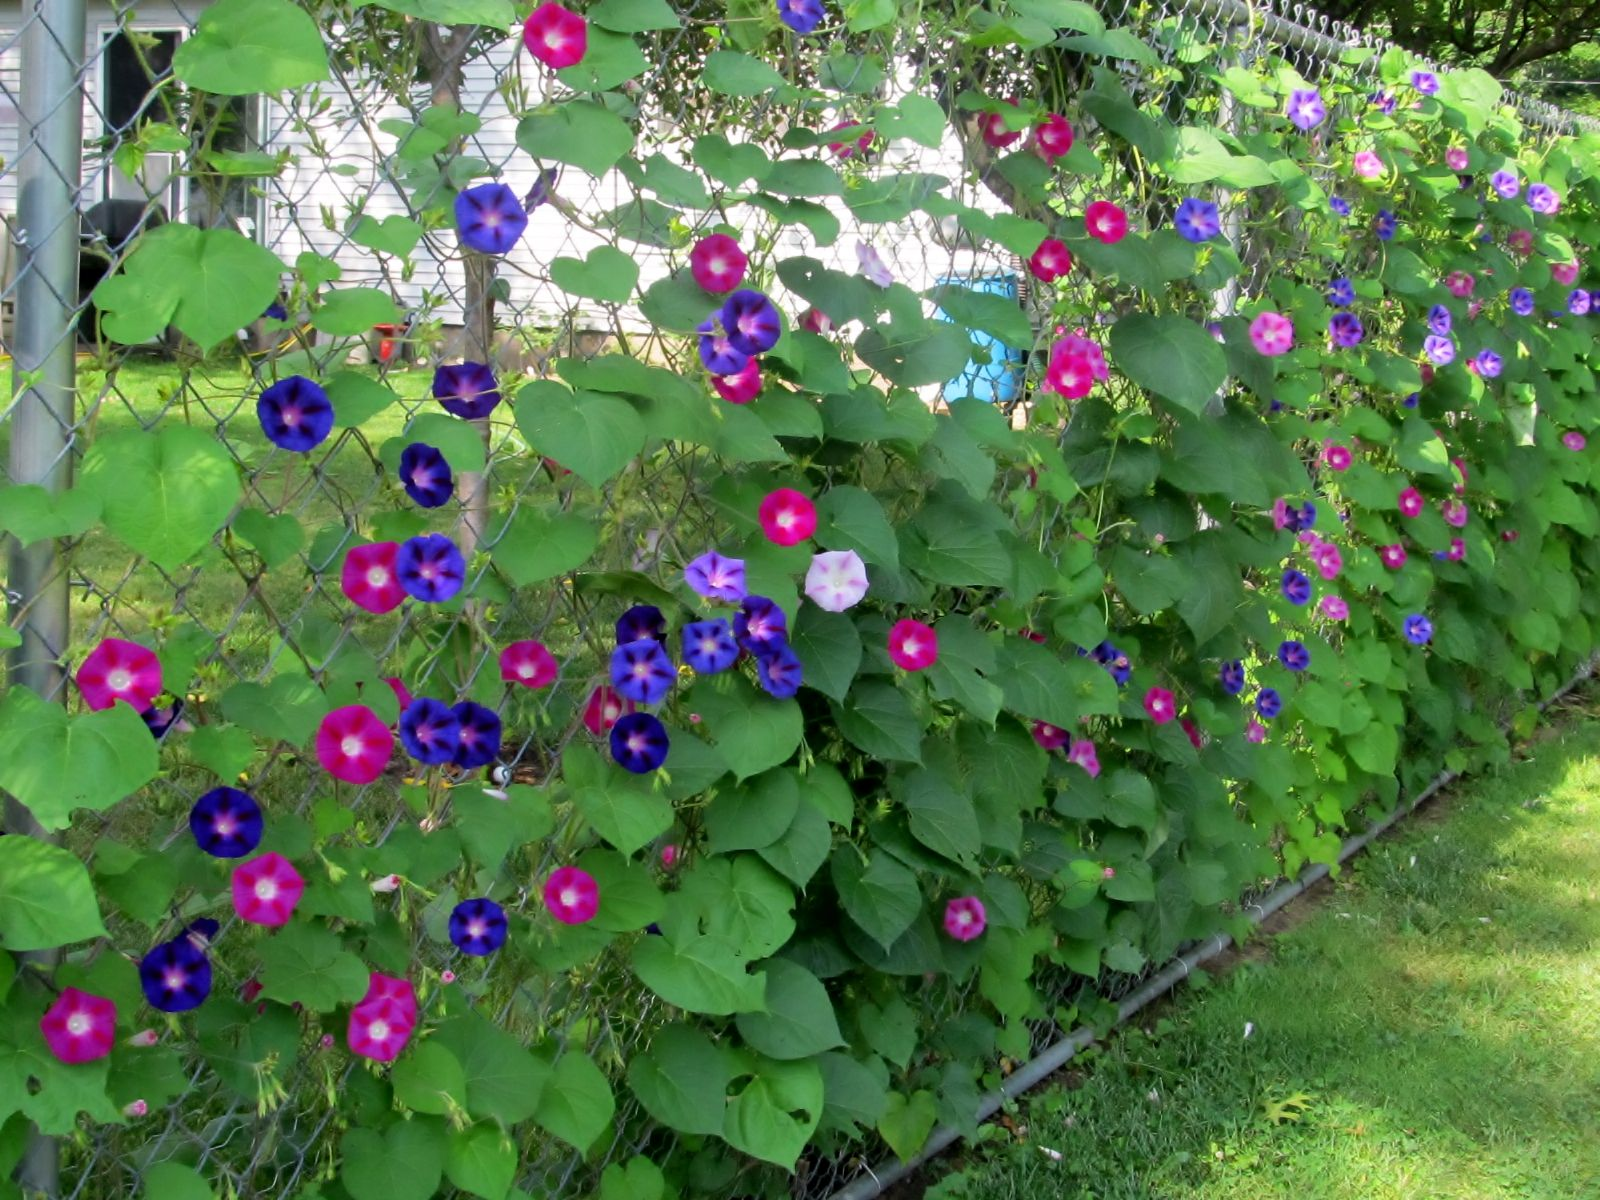 Living Privacy Fence Growing Morning Glories And Clematis Up Chain Link Fence For